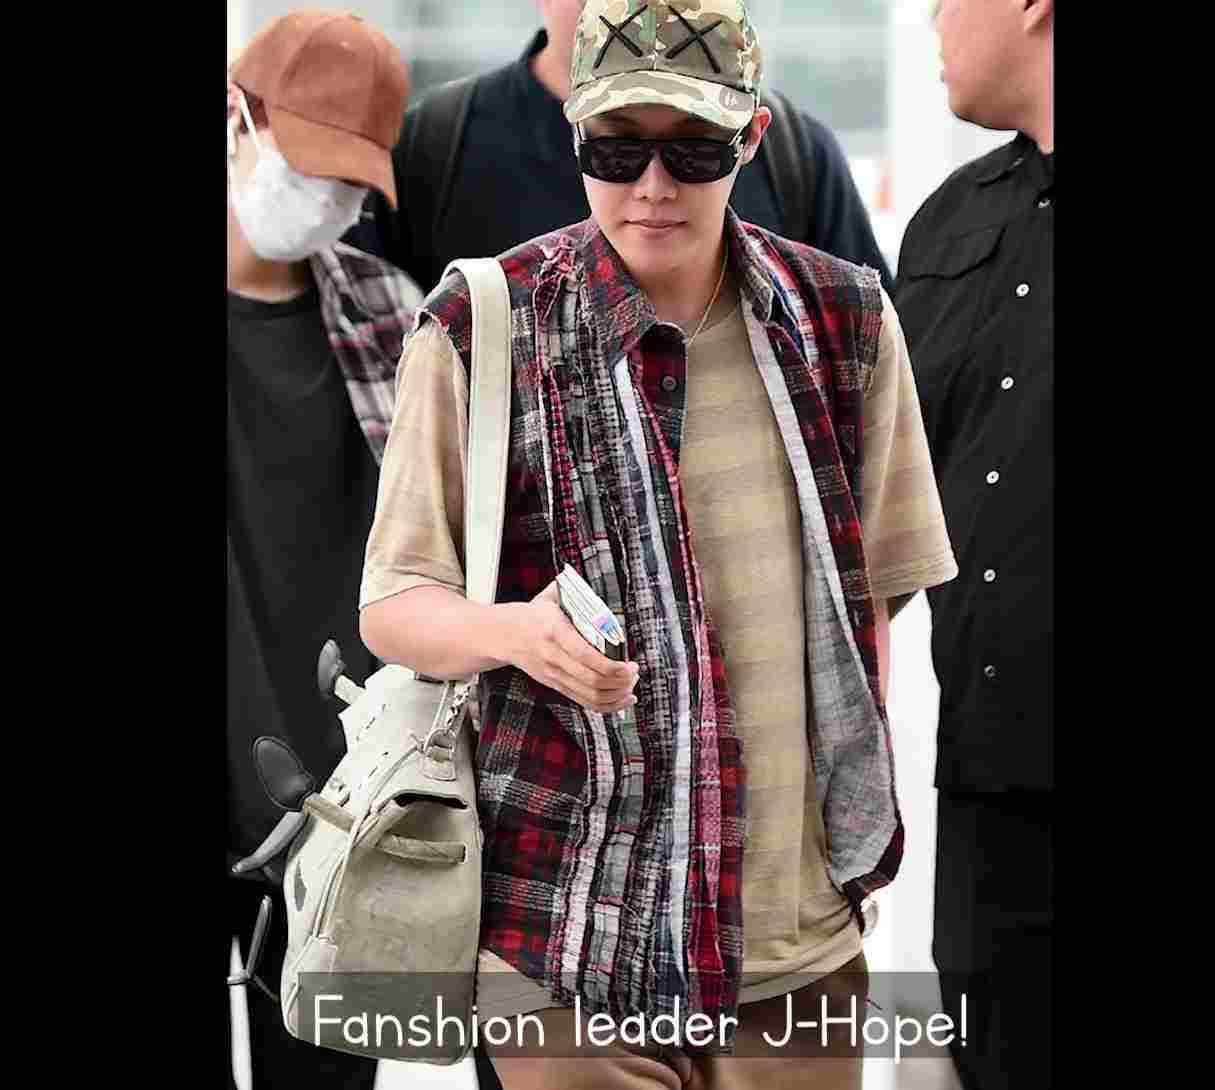 j-hope fashion clothes